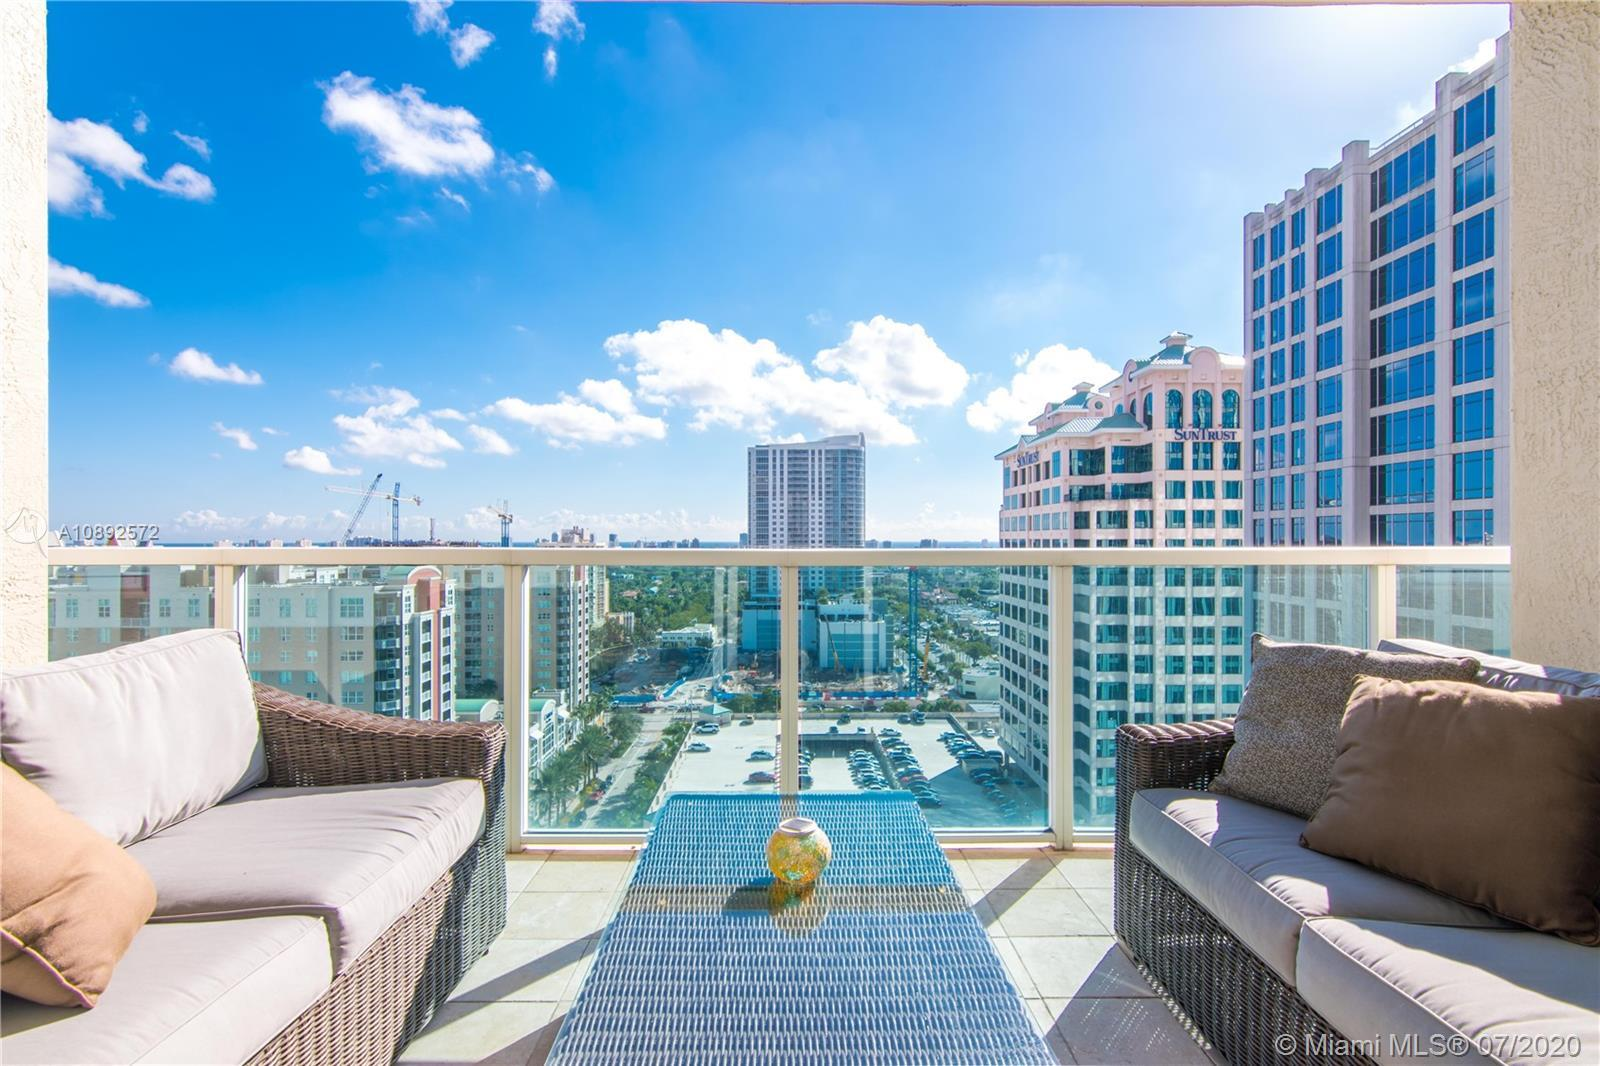 Large 2 bedroom / 2 bathroom unit in the heart of downtown. Direct east facing with ocean backdrop v